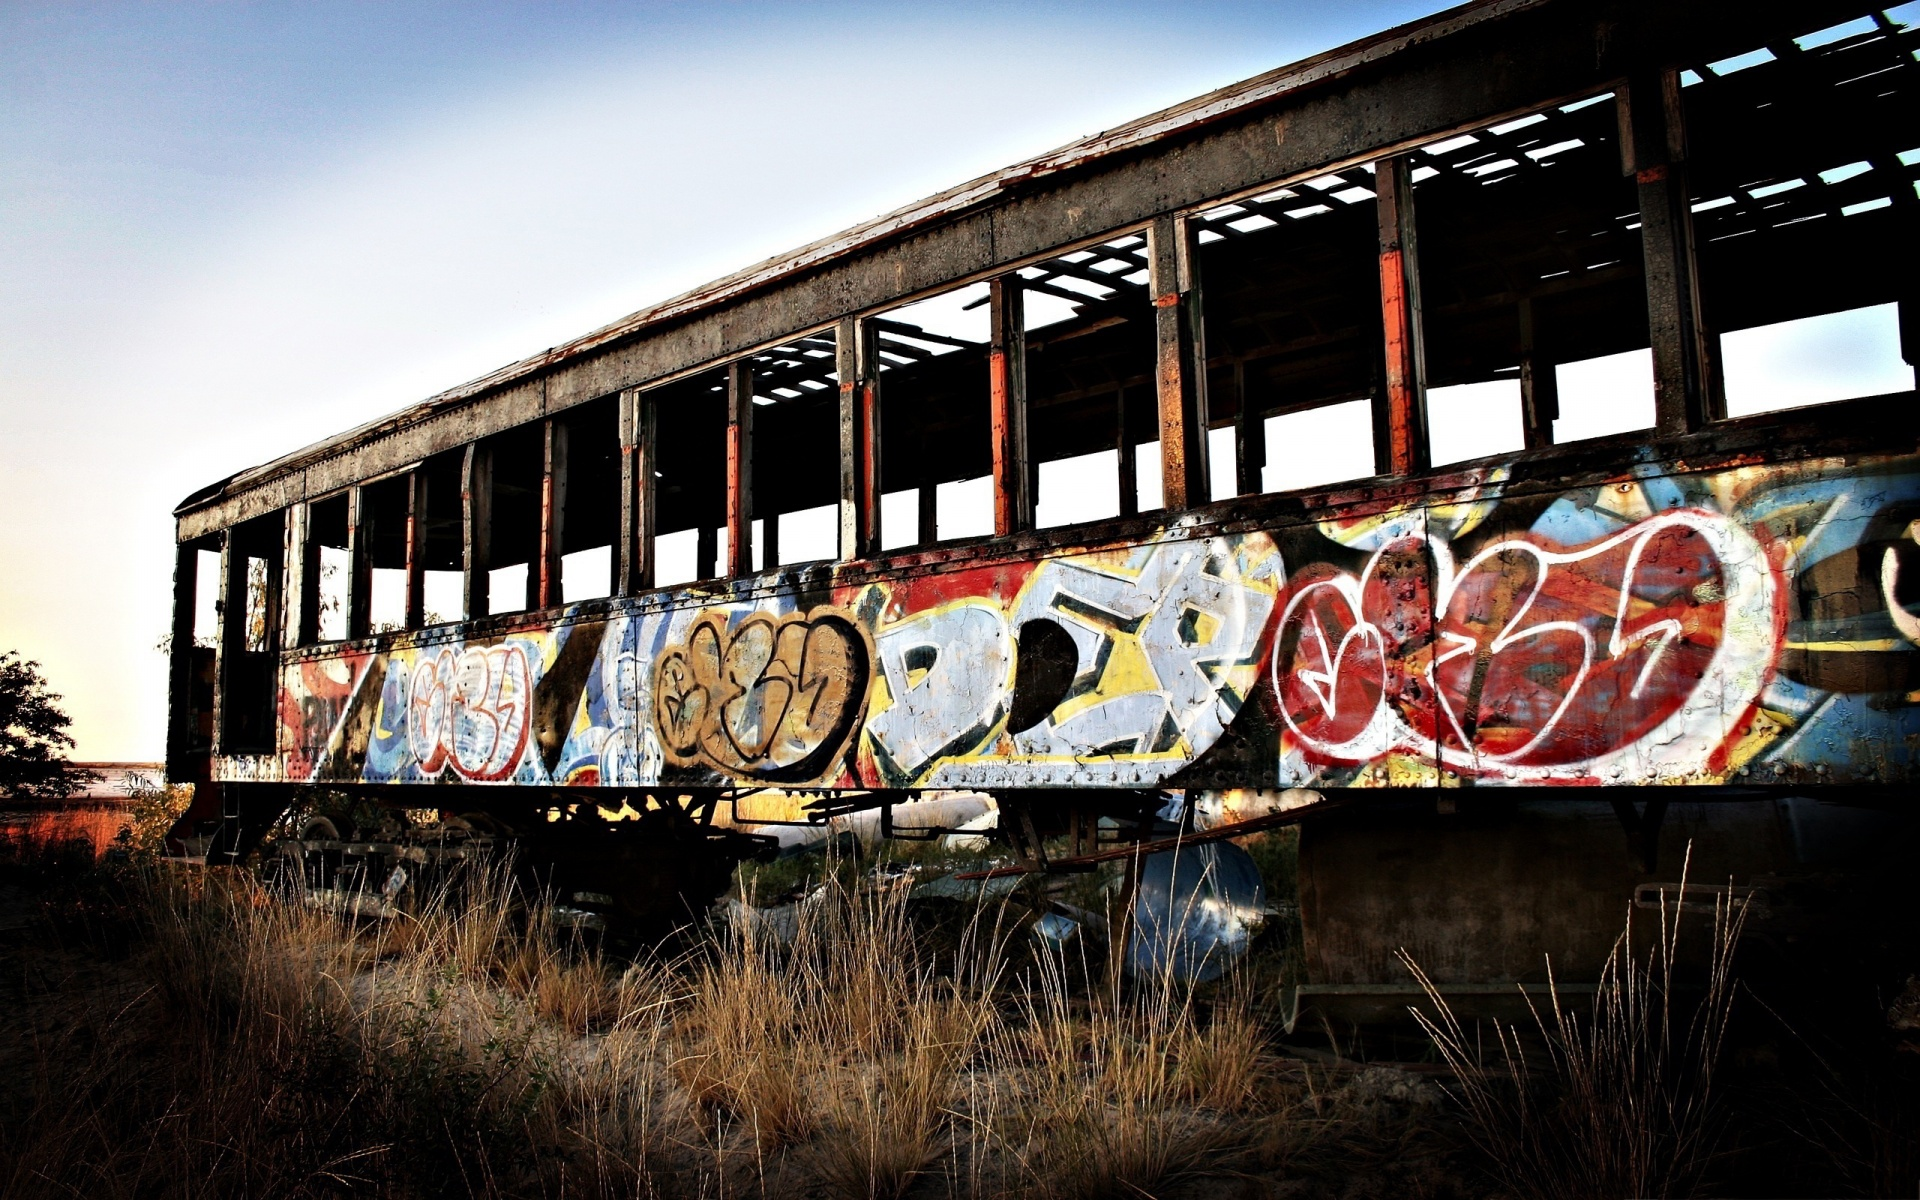 train-wagon-graffiti-1920x1200